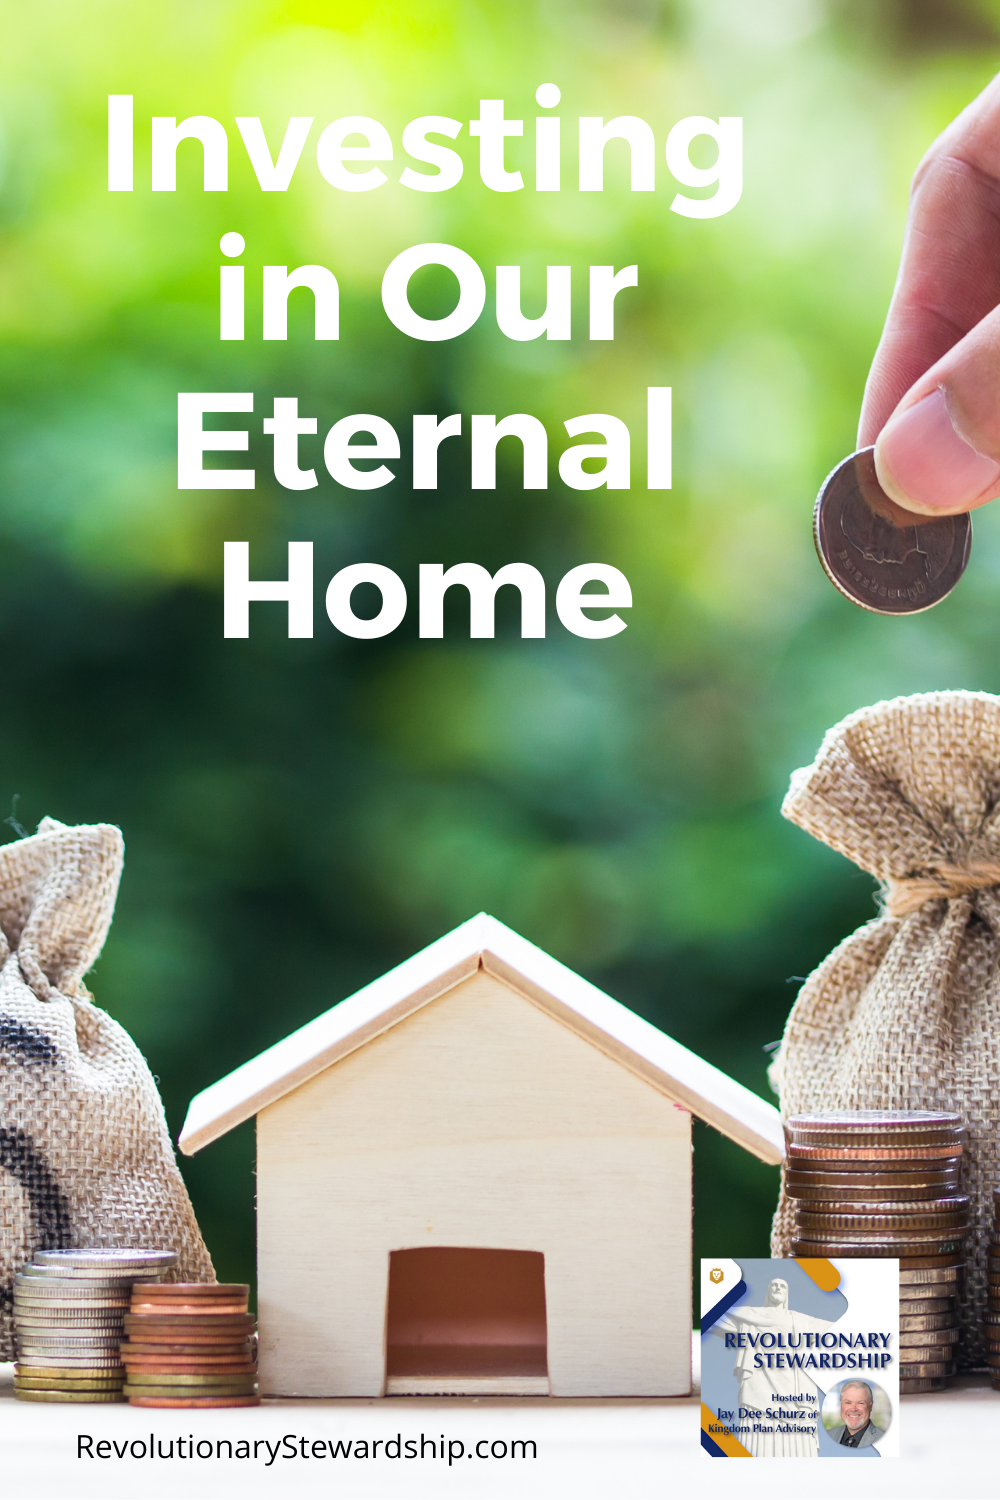 Why do we focus on material things in a place where we are here just for a short time? God has entrusted us with blessings of many things that we are to steward.